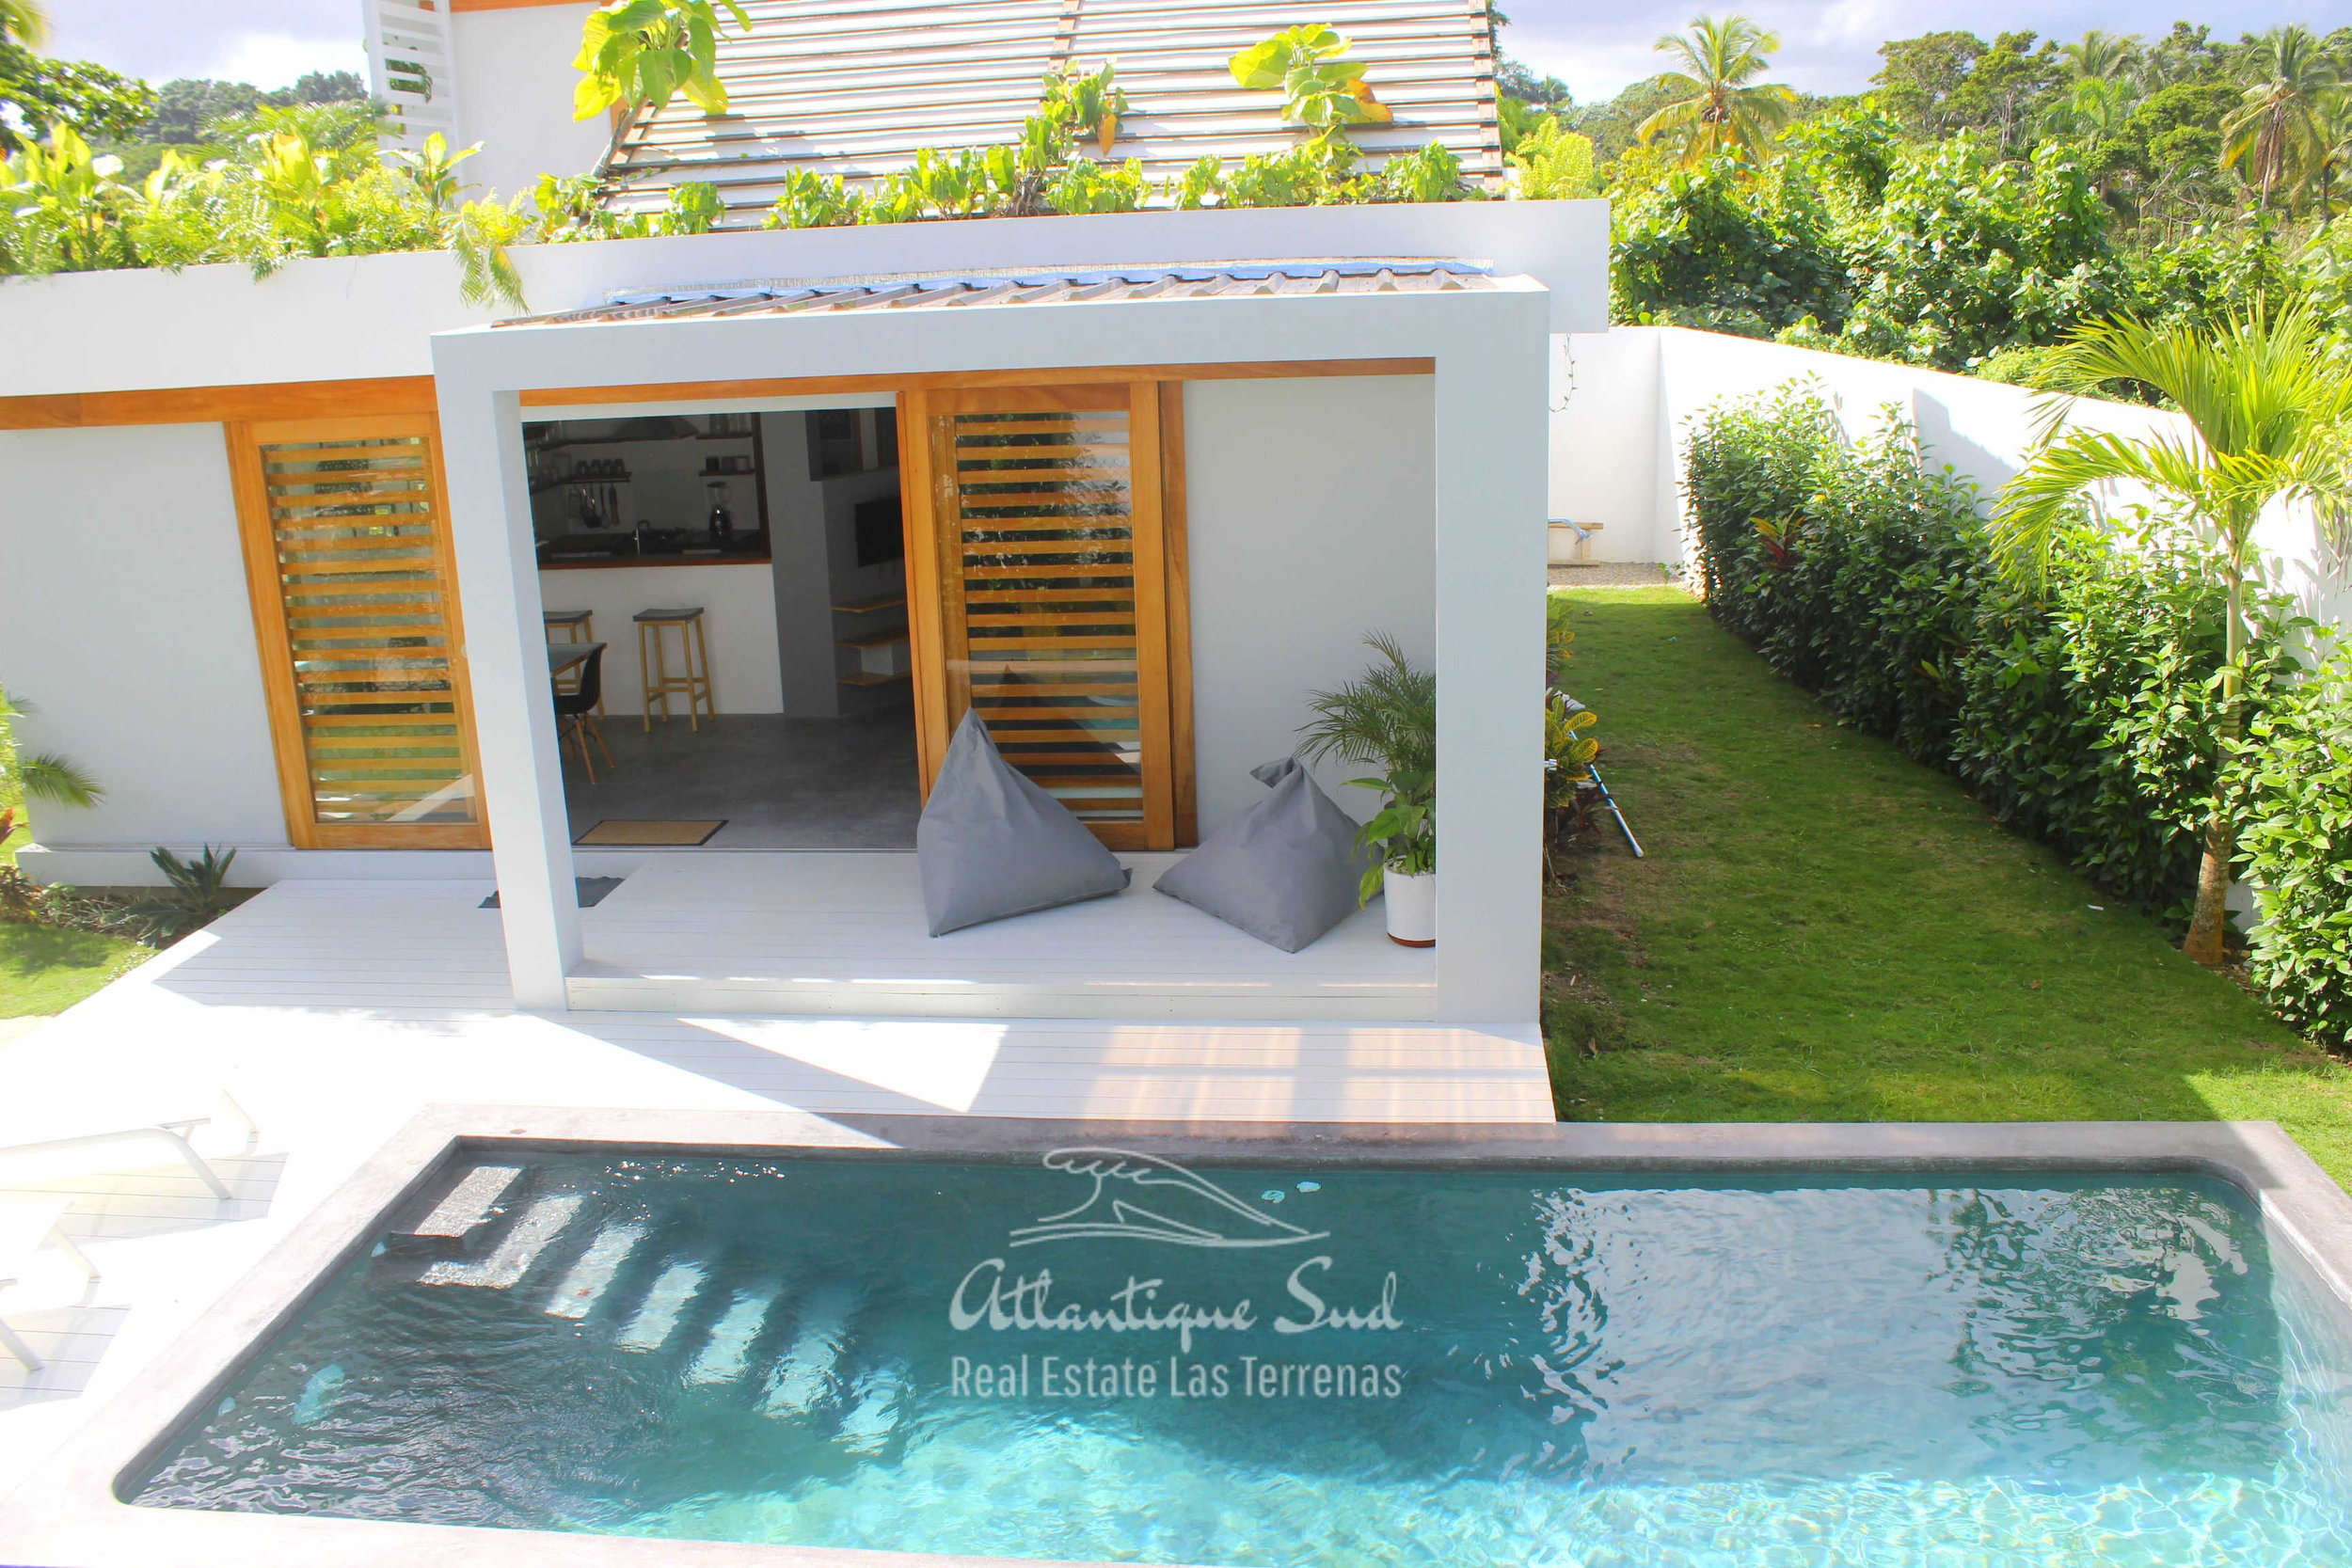 Villa for sale in Las Terrenas - Pran25.jpg